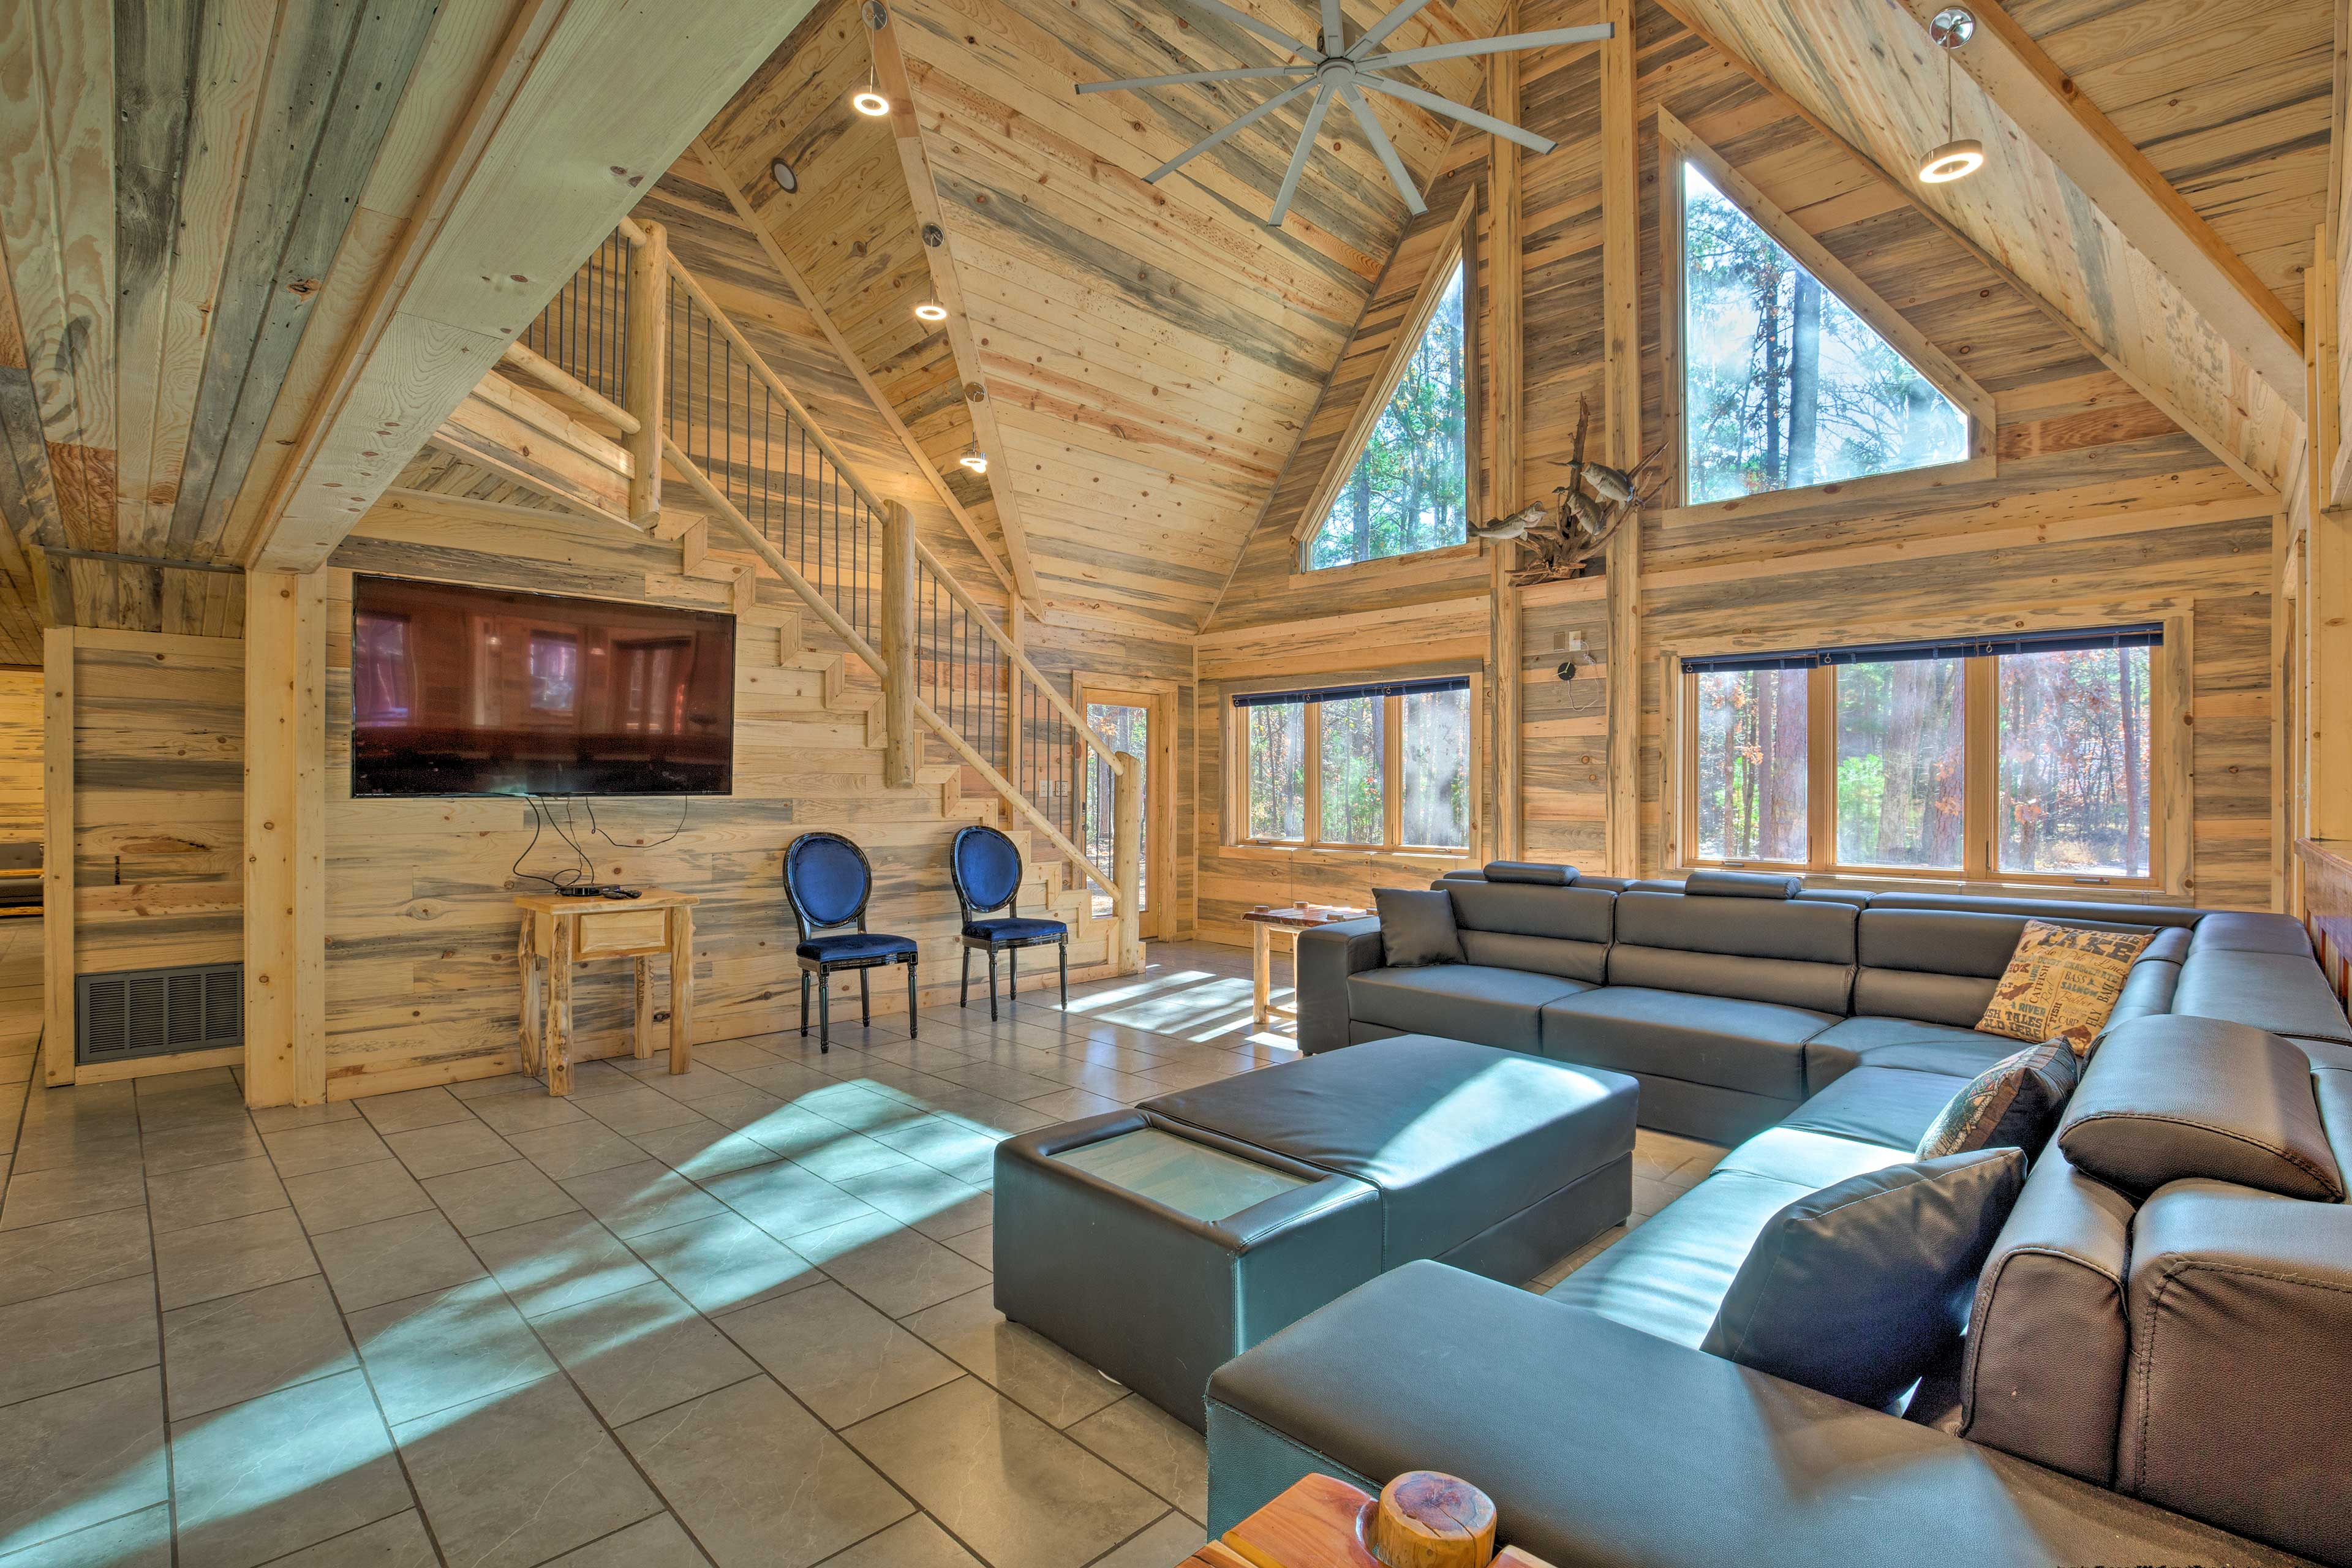 Enjoy the Broken Bow Lake area in style at this spacious cabin.